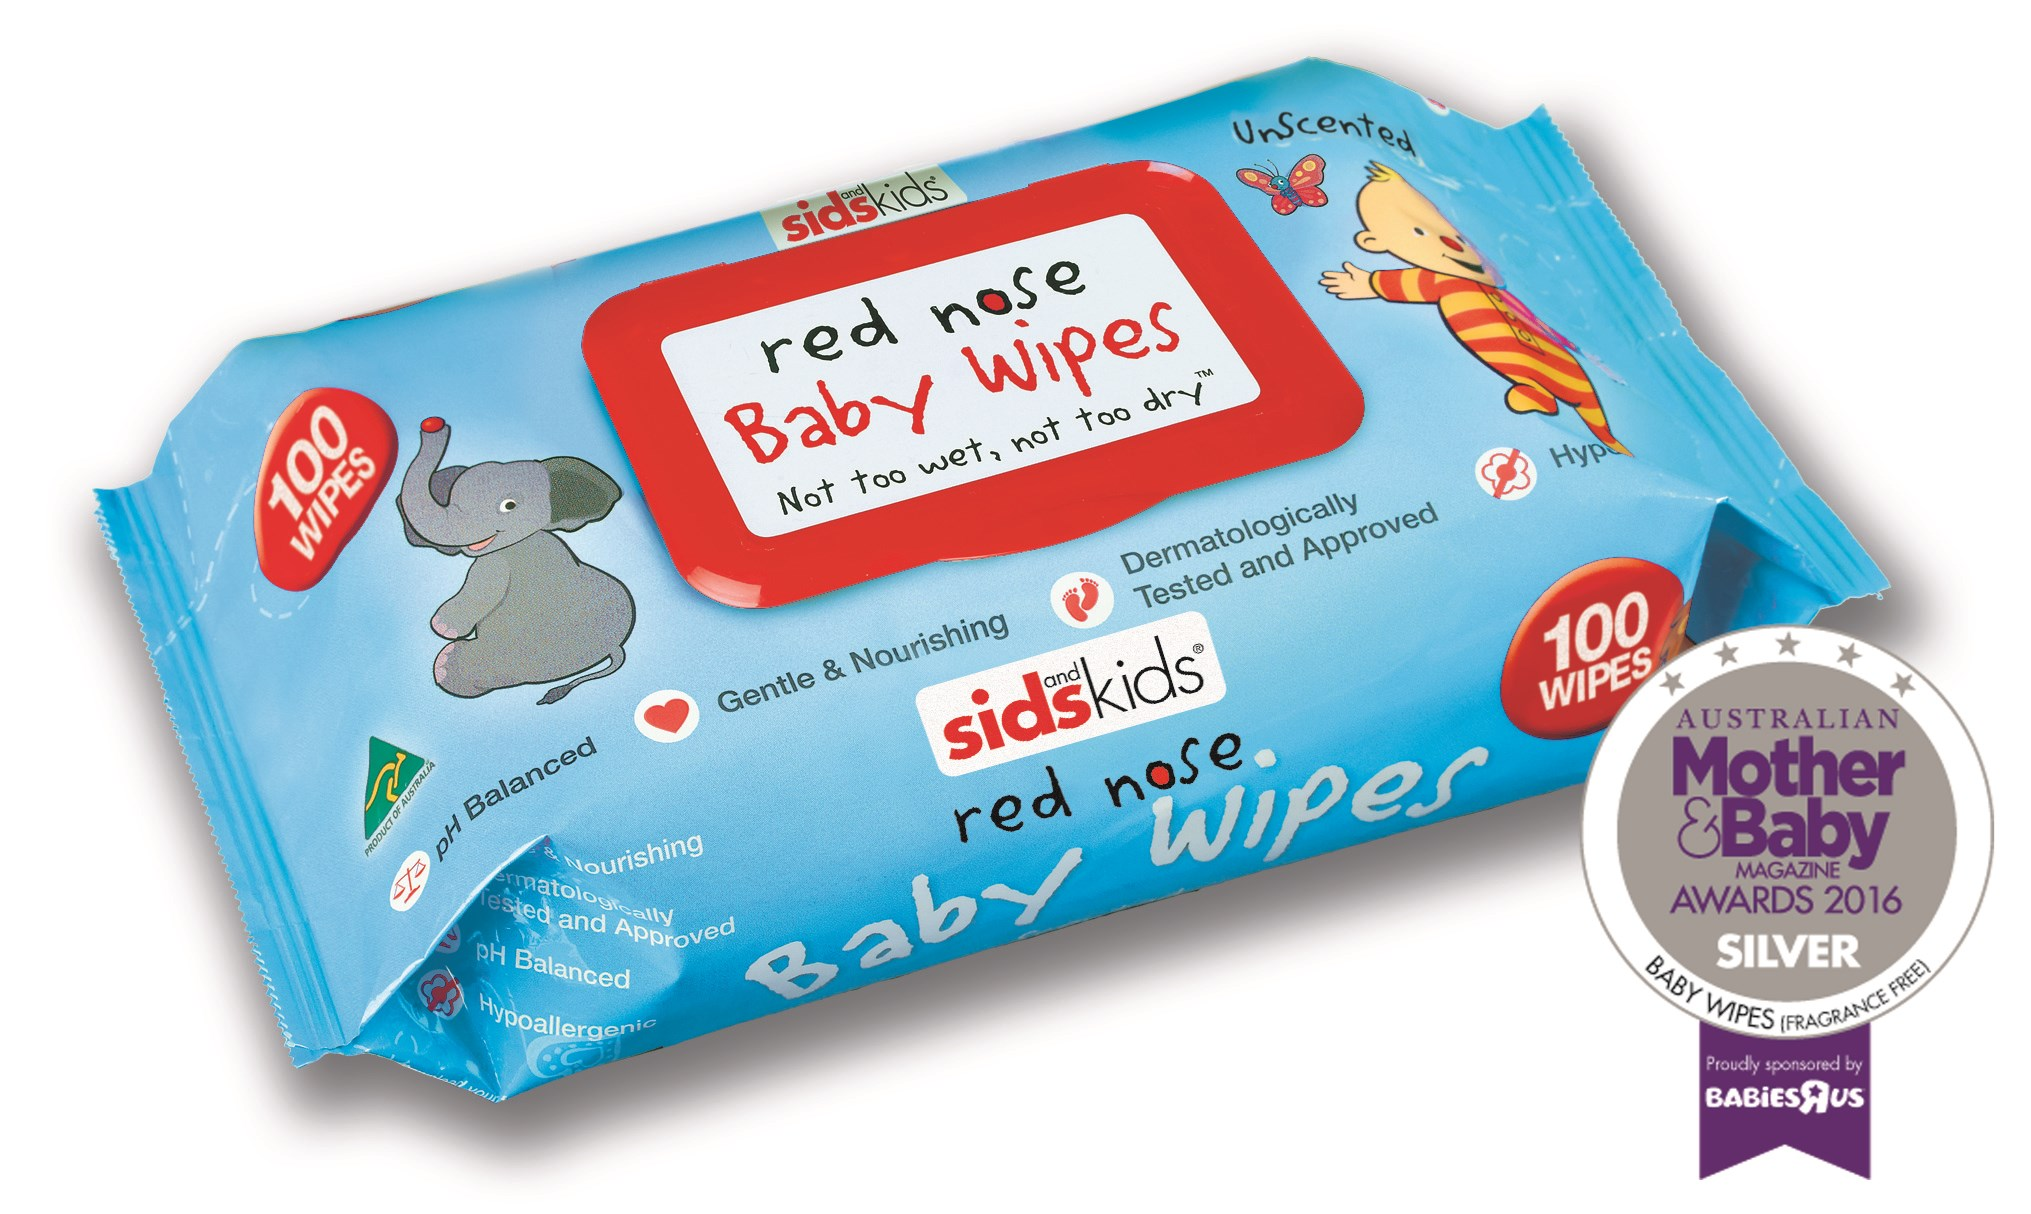 """CATEGORY: MOST POPULAR BABY WIPES (FRAGRANCE-FREE). [Aussie Wipes Red Nose Baby Wipes](http://www.aussiewipes.com.au/products/